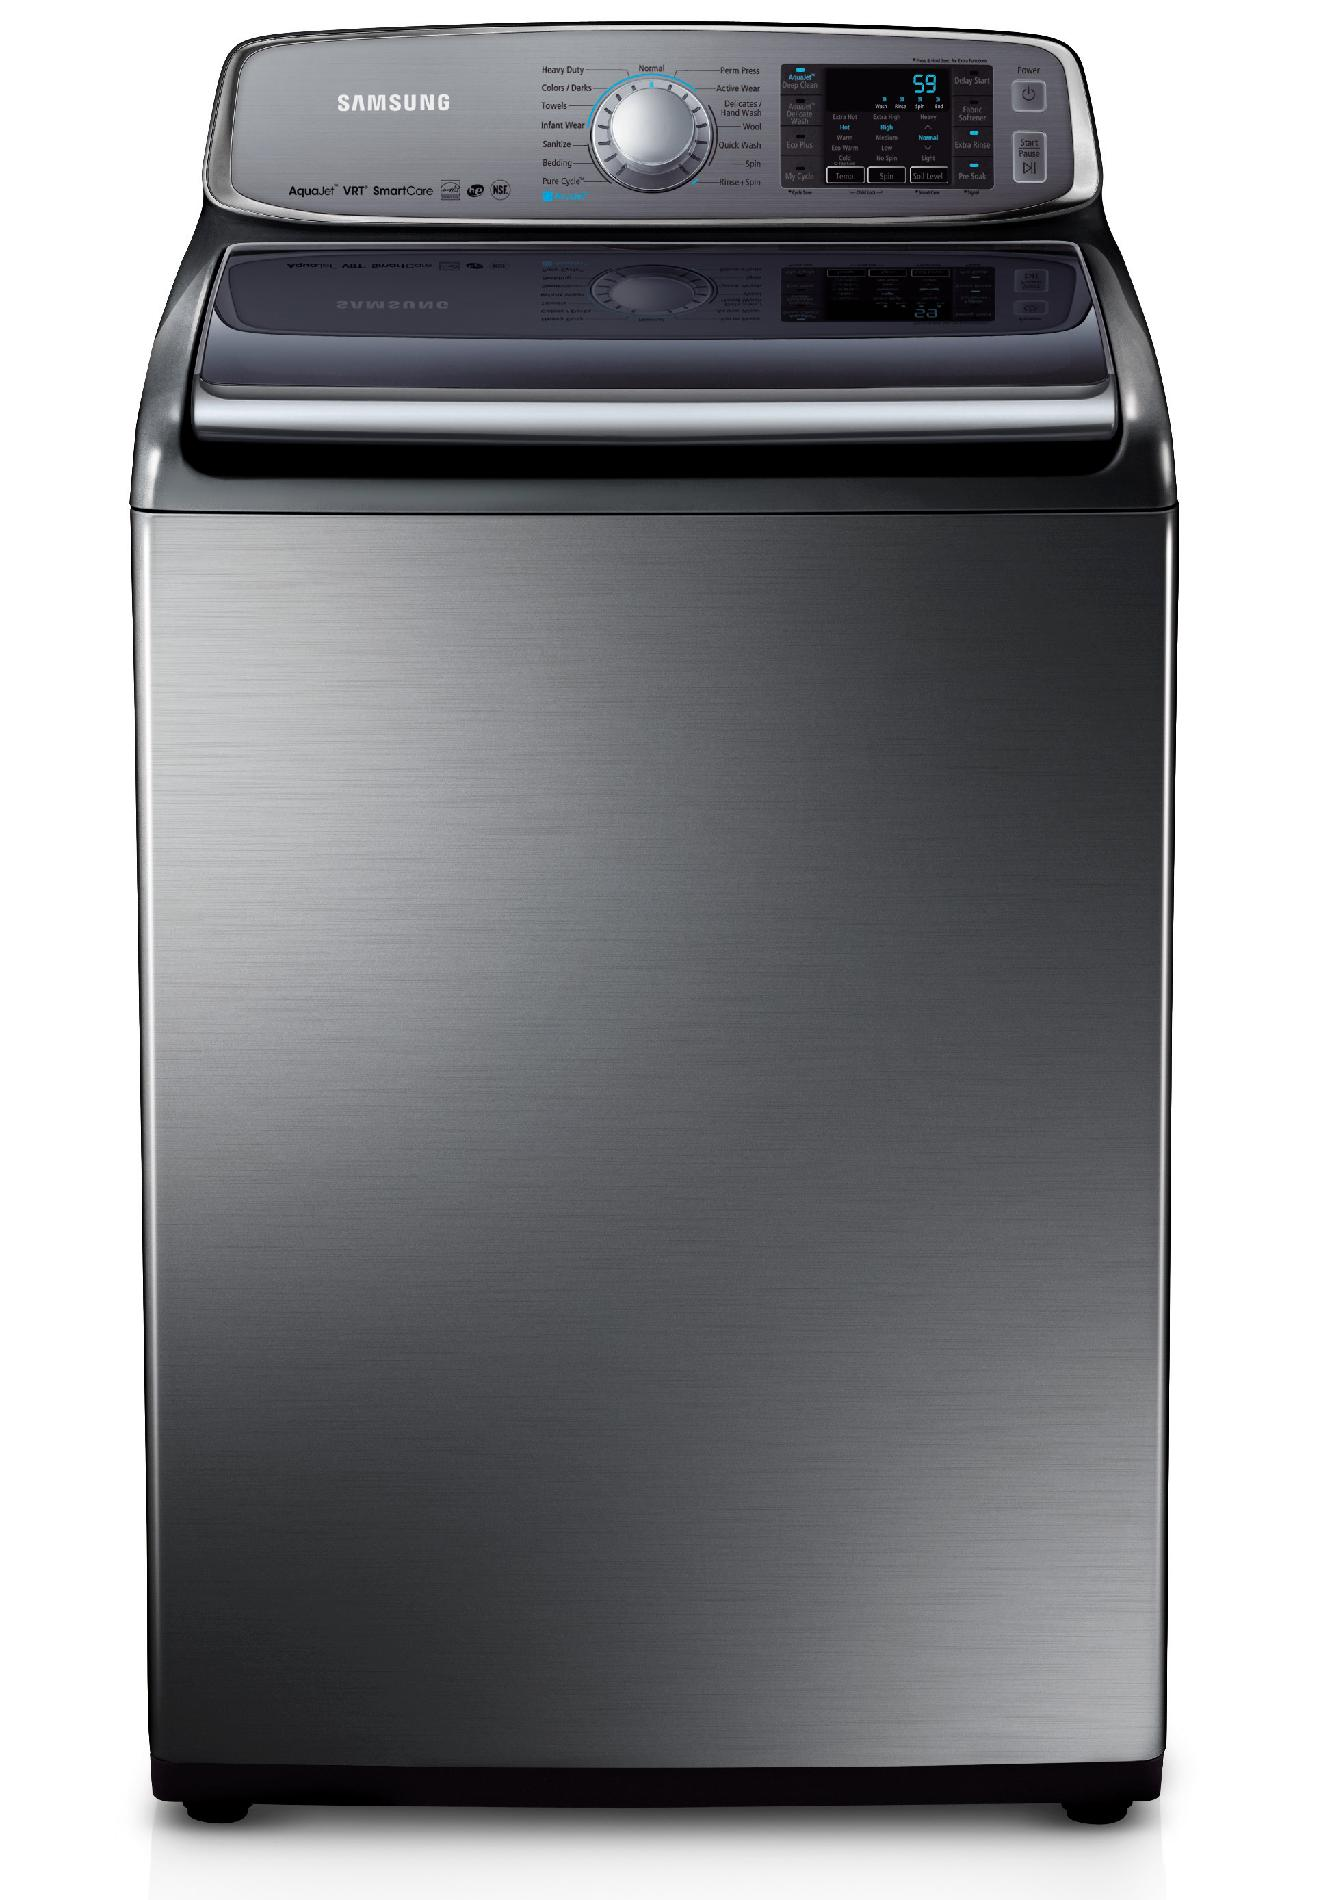 Samsung - Wa50f9a8dsp 5.0 Cu. Ft. Top-load Washer With Internal Heater Stainless Platinum